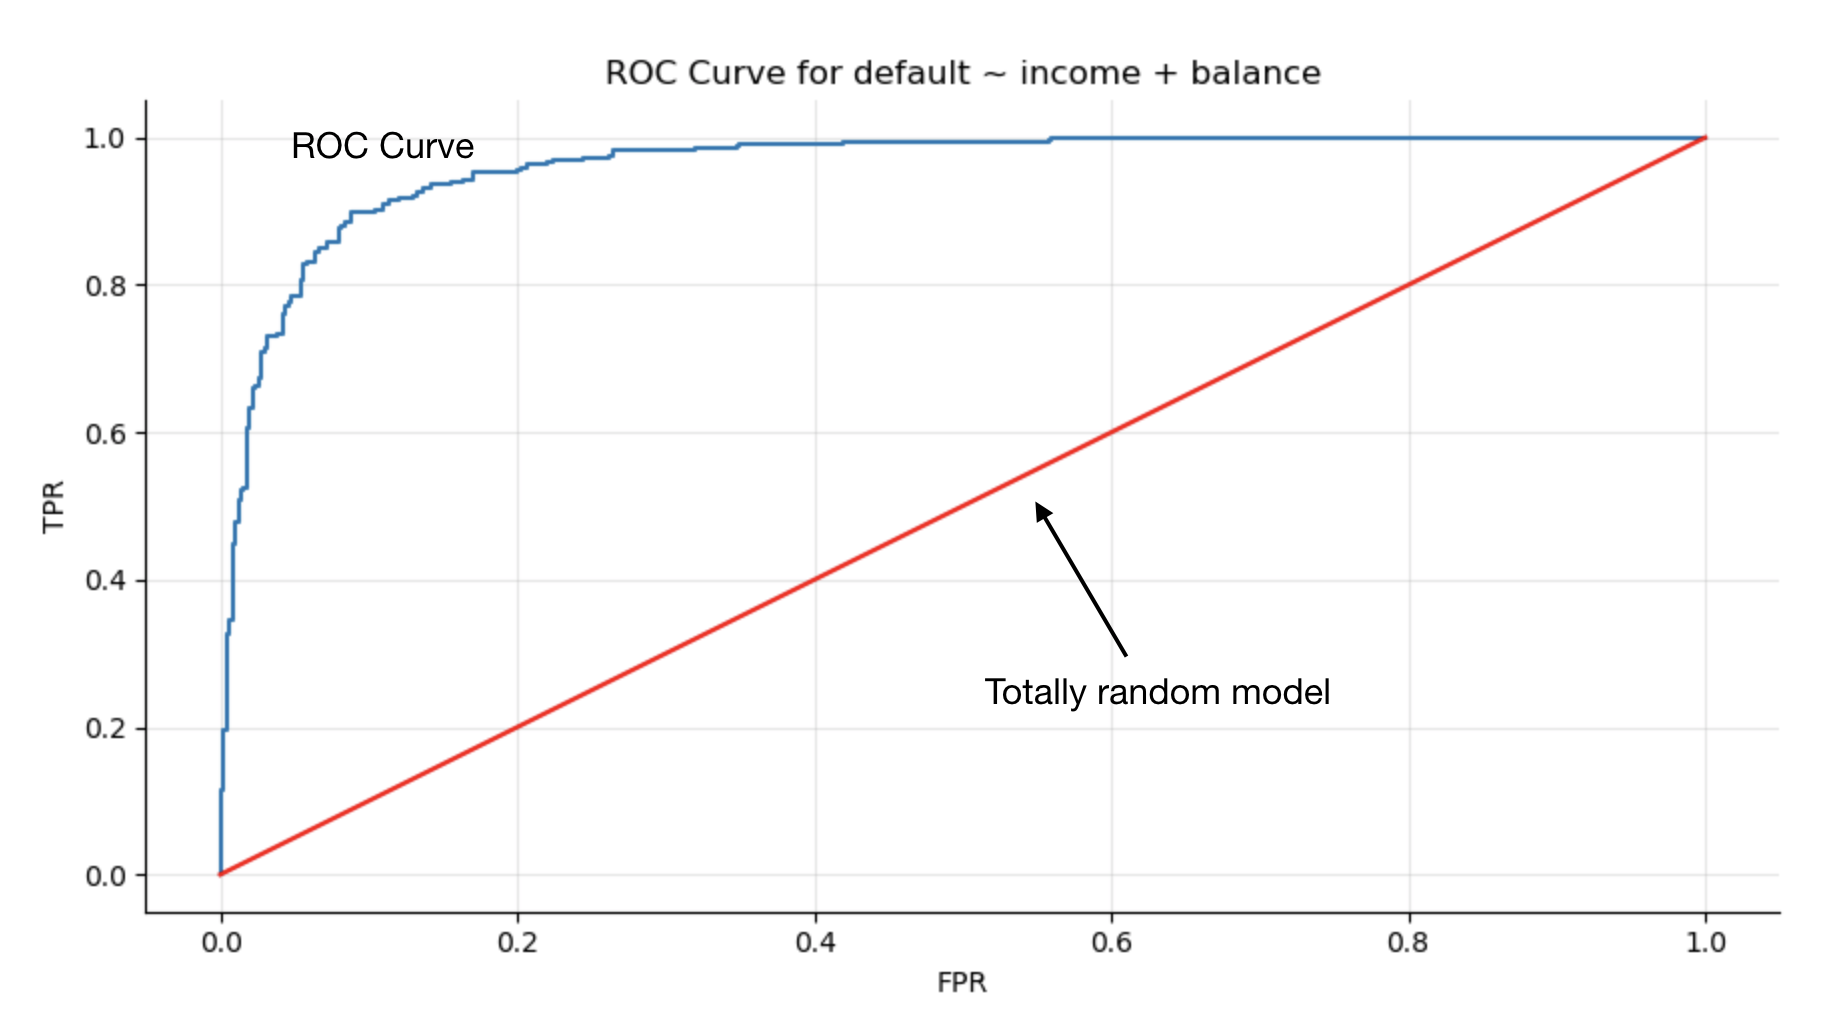 ROC Curve: Default ~ Income + Balance